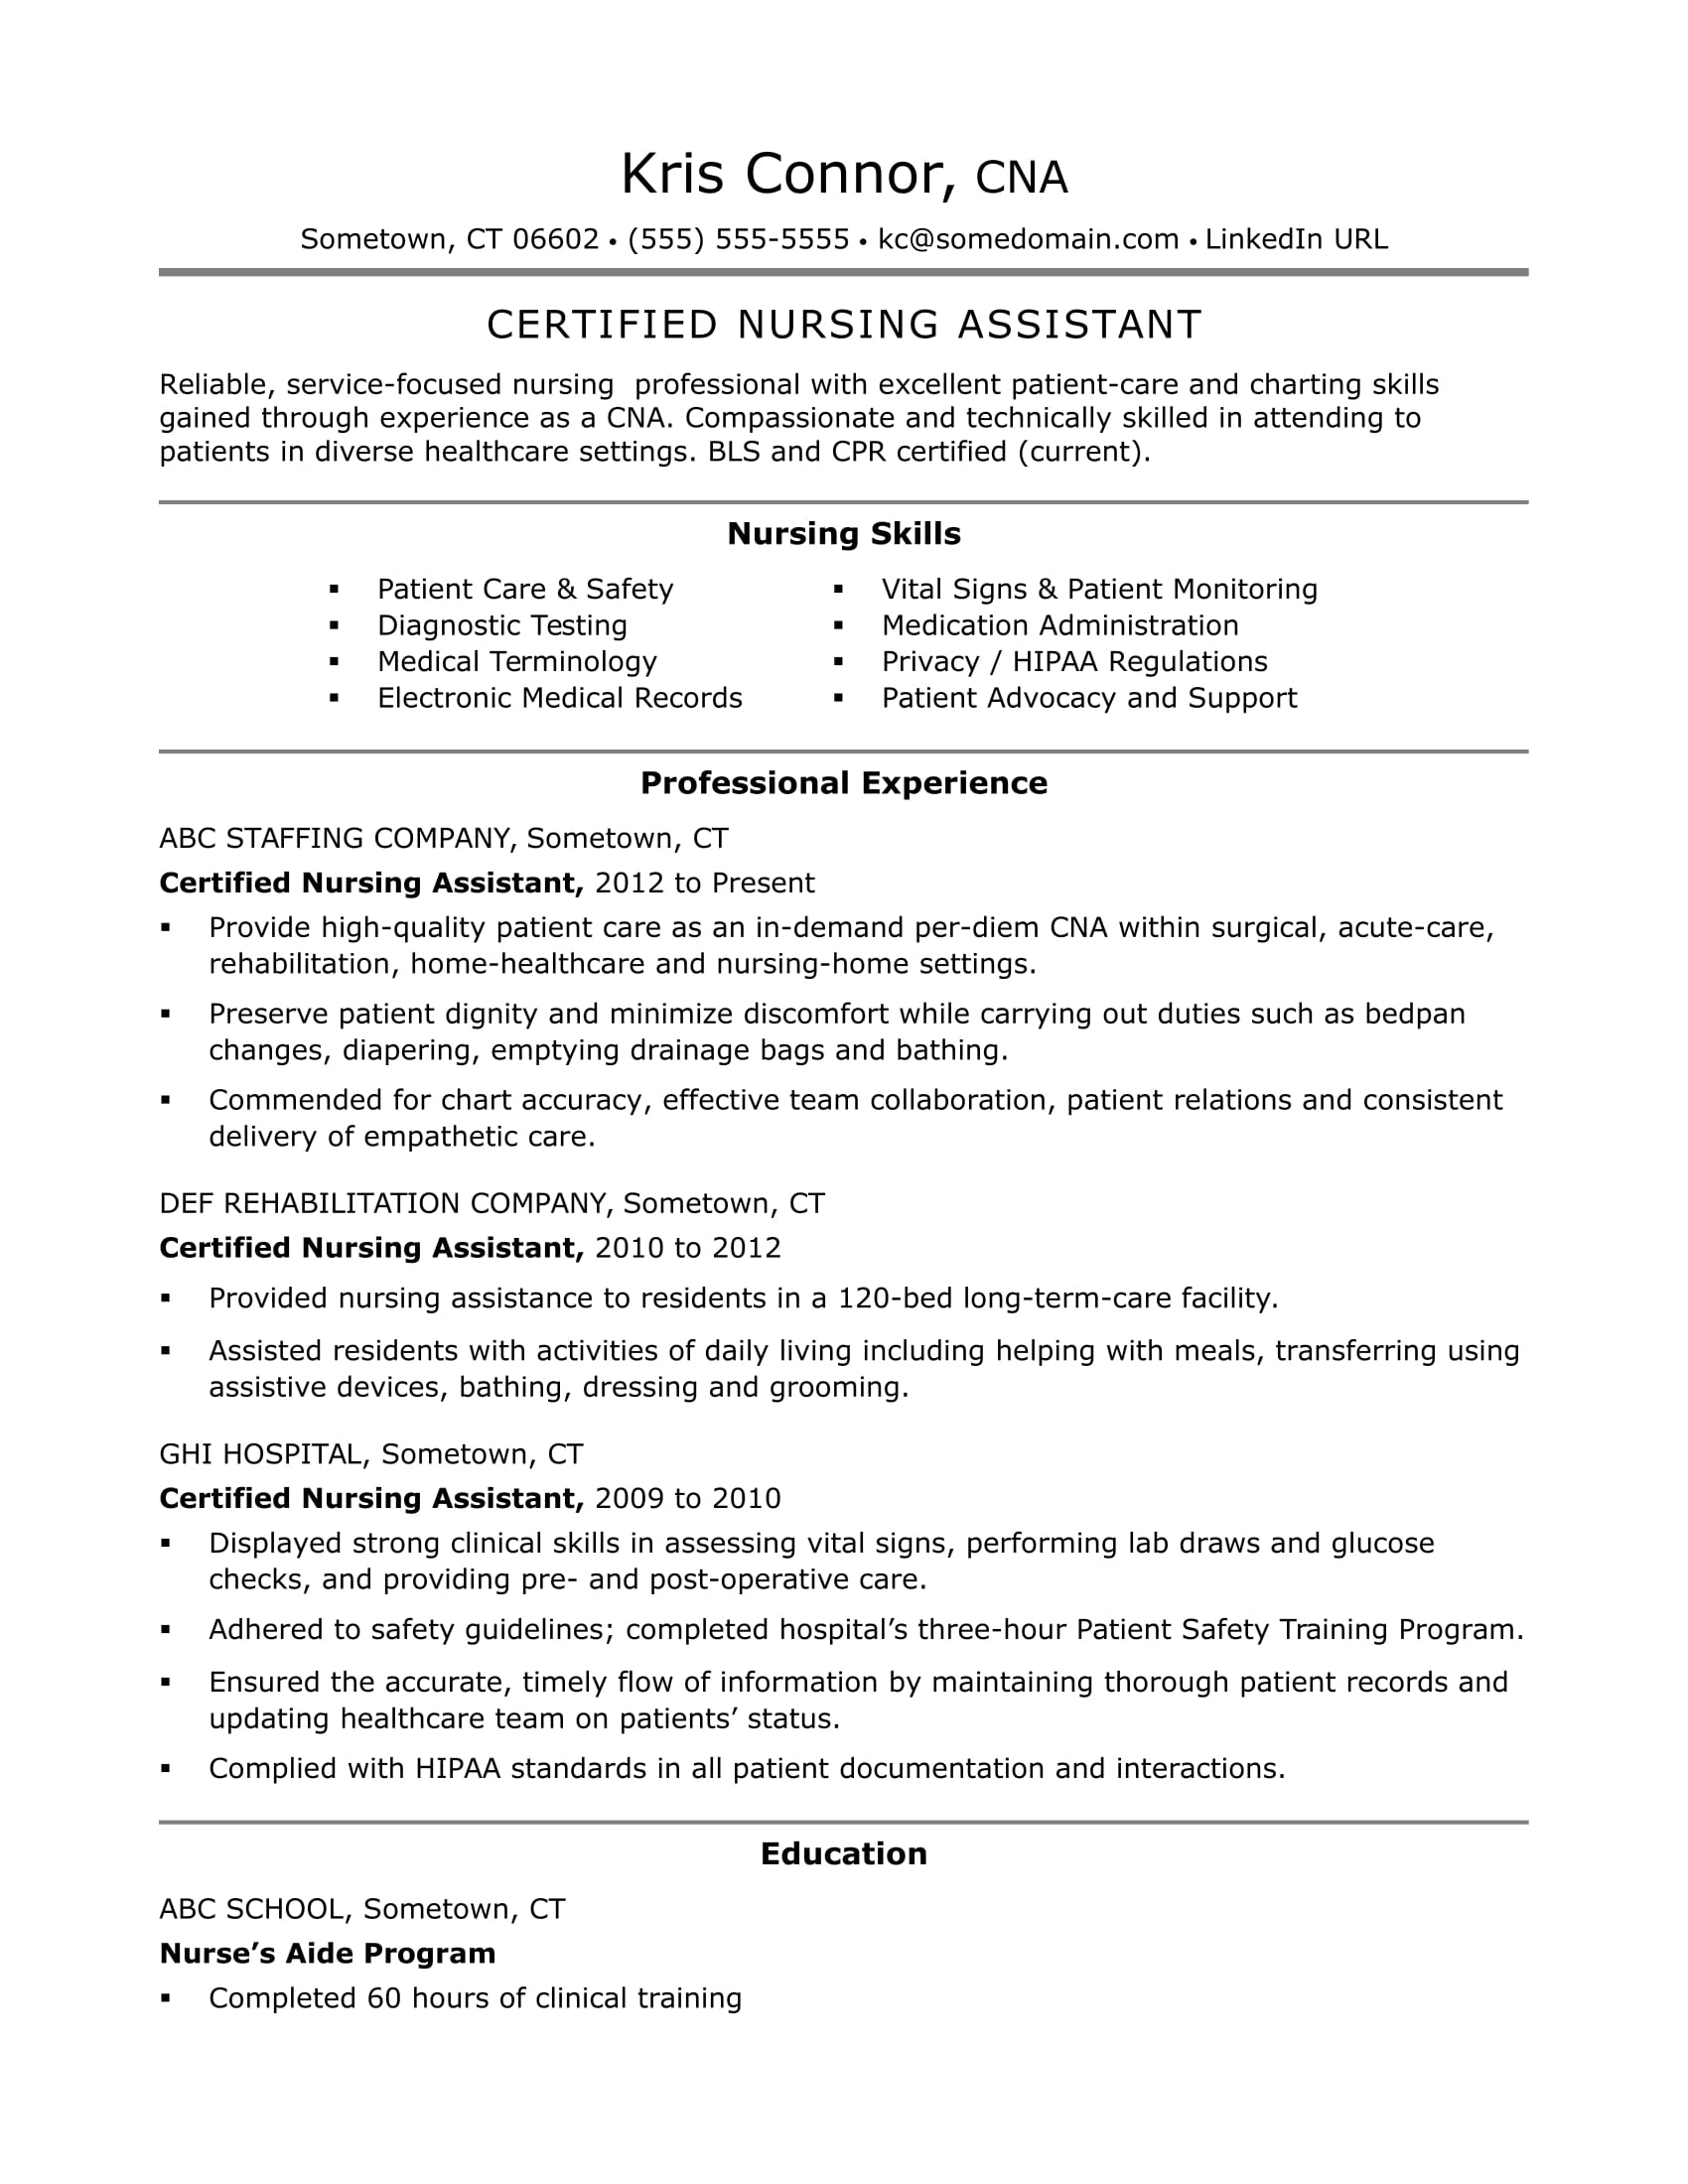 Caregiver Resume Samples Cna Resume Examples Skills For Cnas Monster